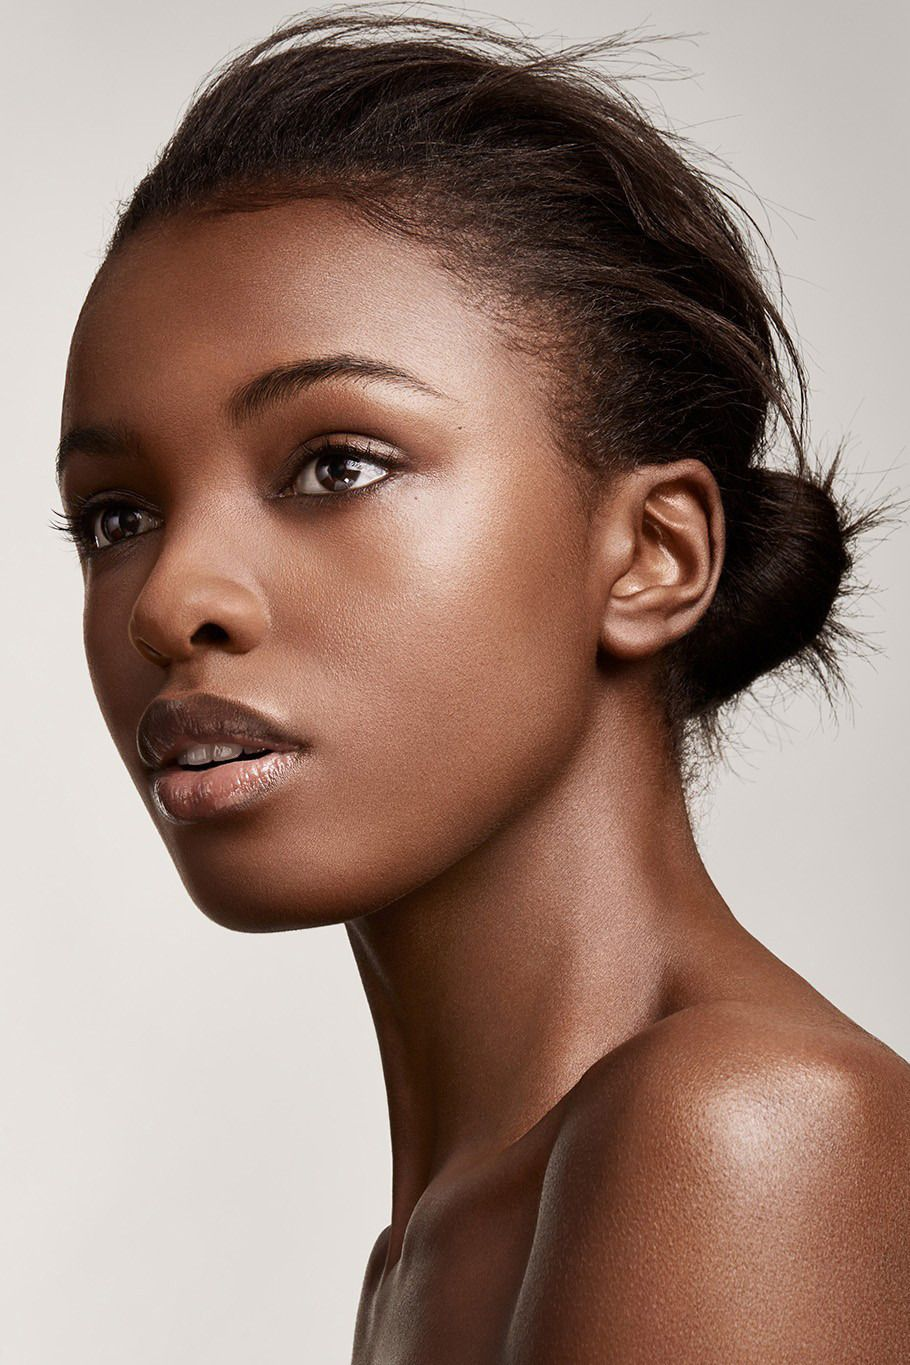 Leomie Anderson nude (45 fotos), photo Pussy, Snapchat, cameltoe 2019